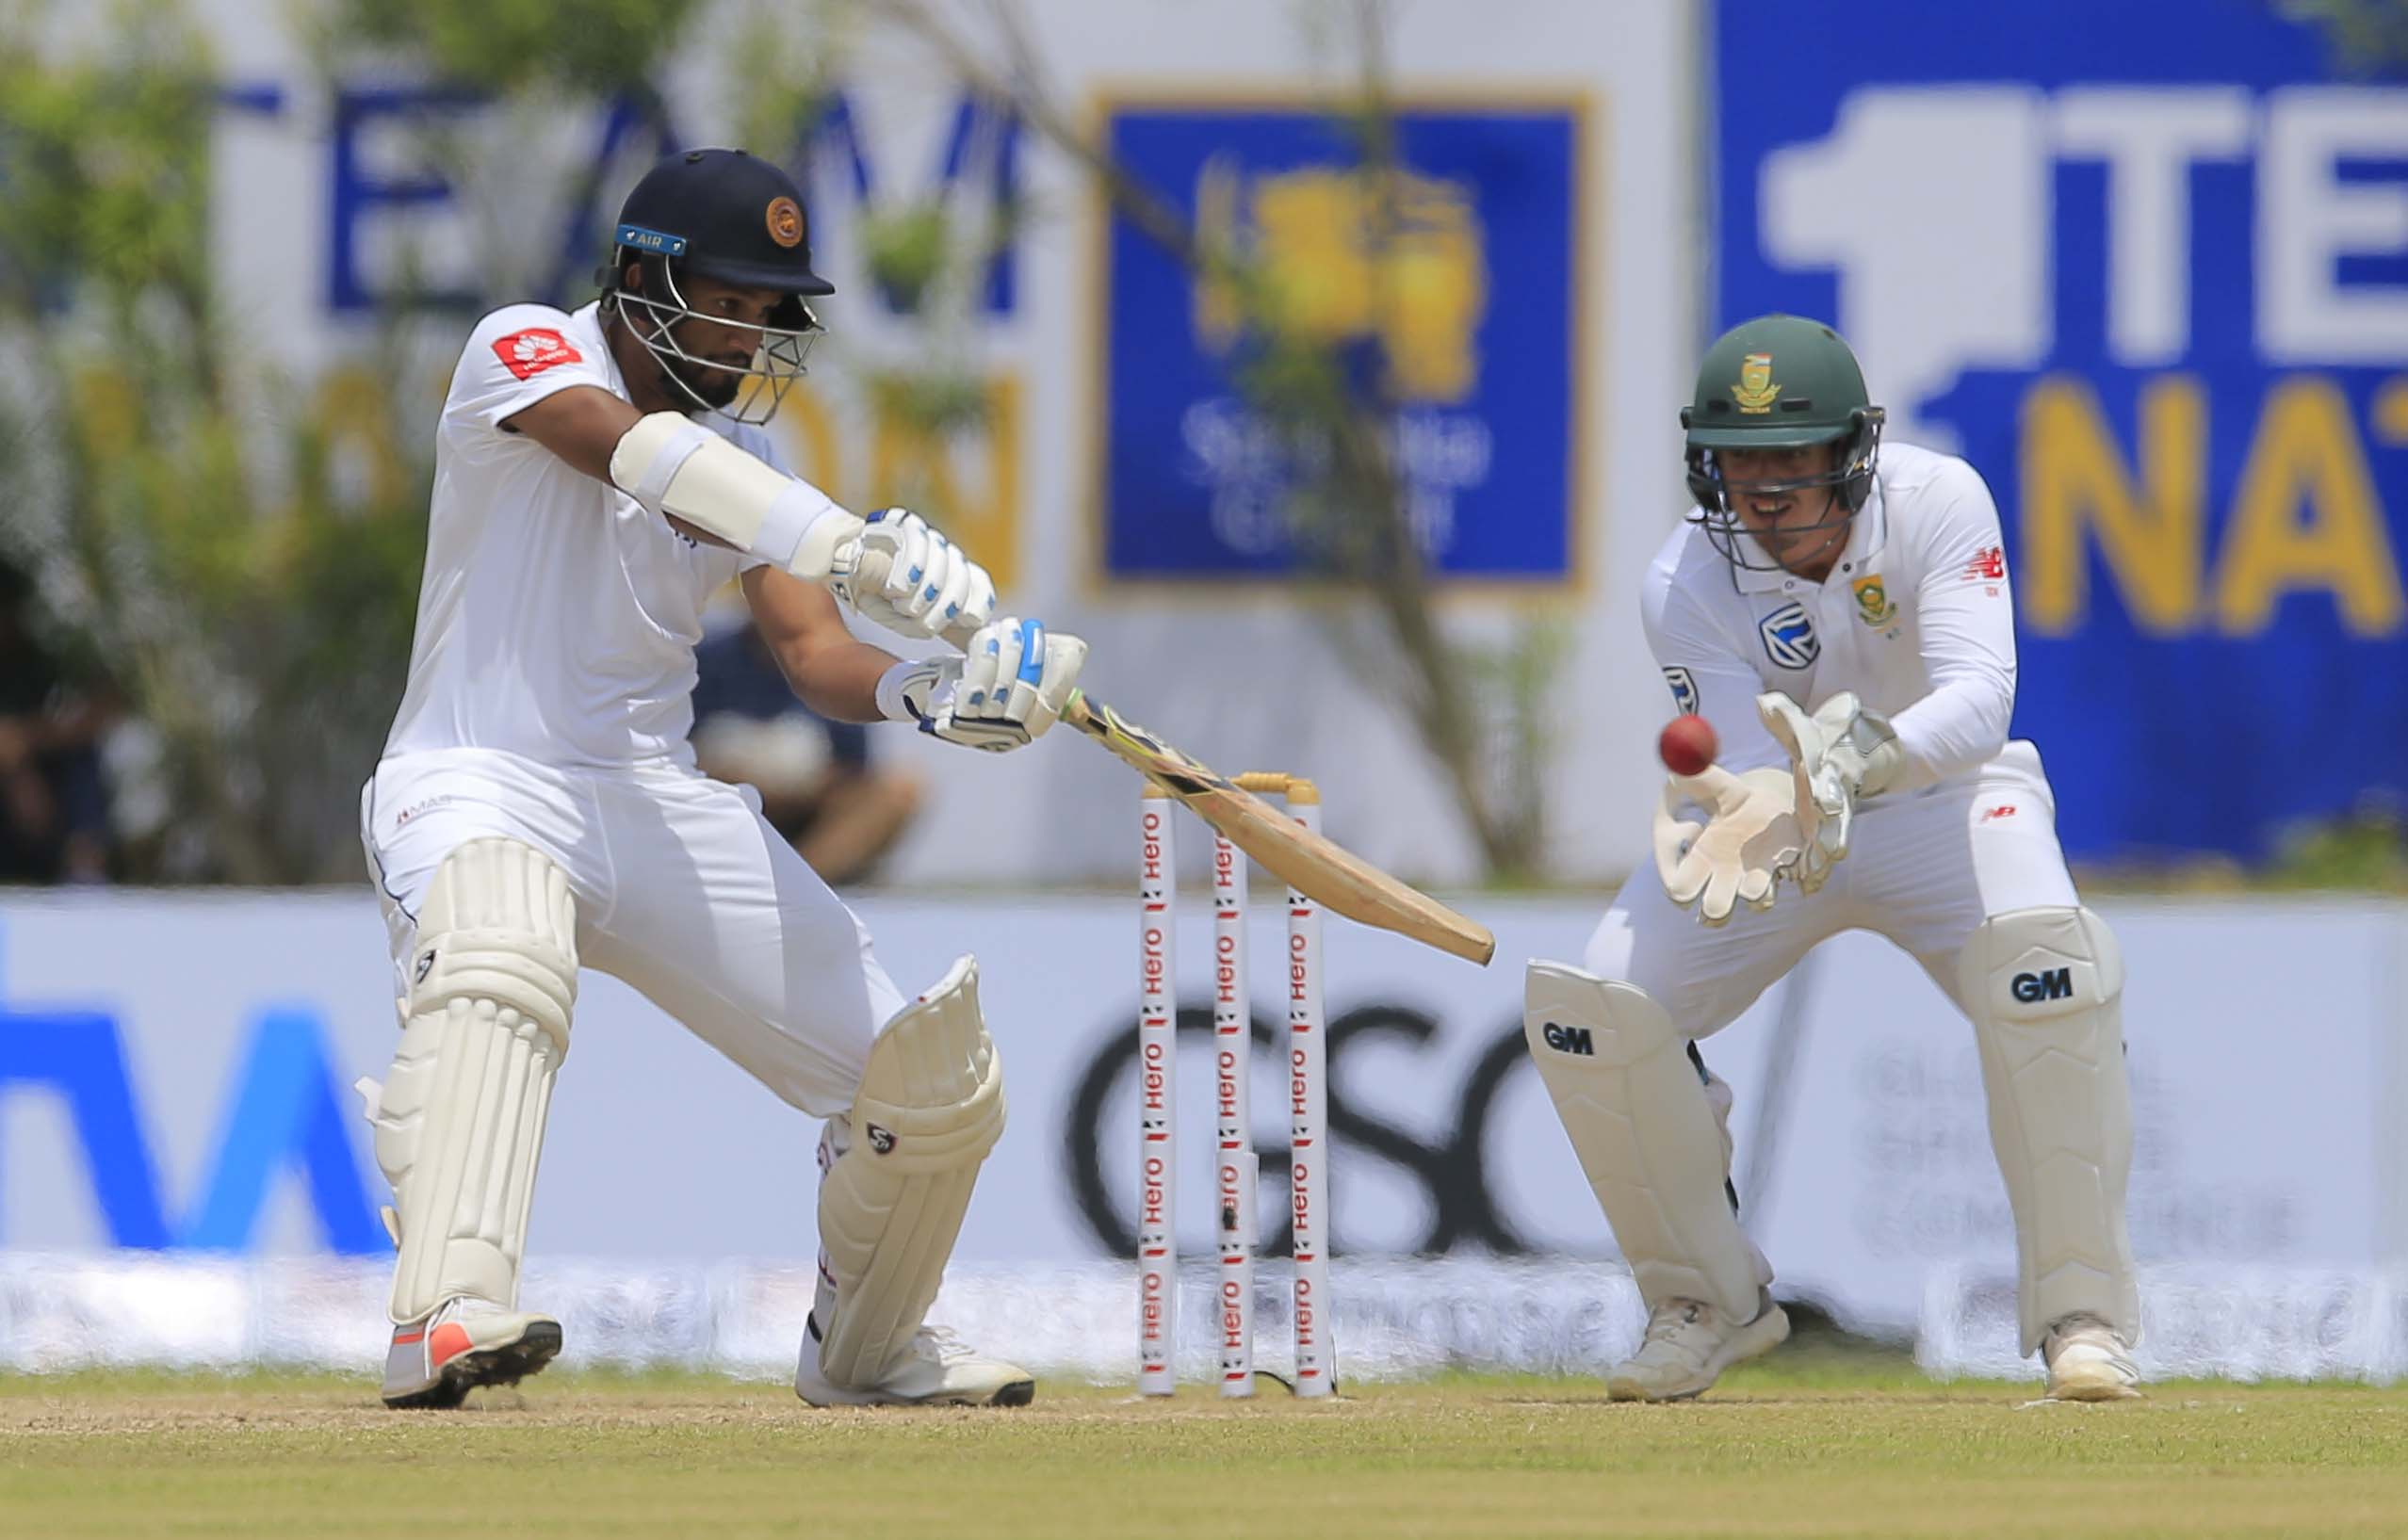 Sri Lanka's Dimuth Karunaratne plays shot as South Africa's Quinton de Kock watches during the first day's play of their first Test cricket match in Galle, Sri Lanka on Thursday.